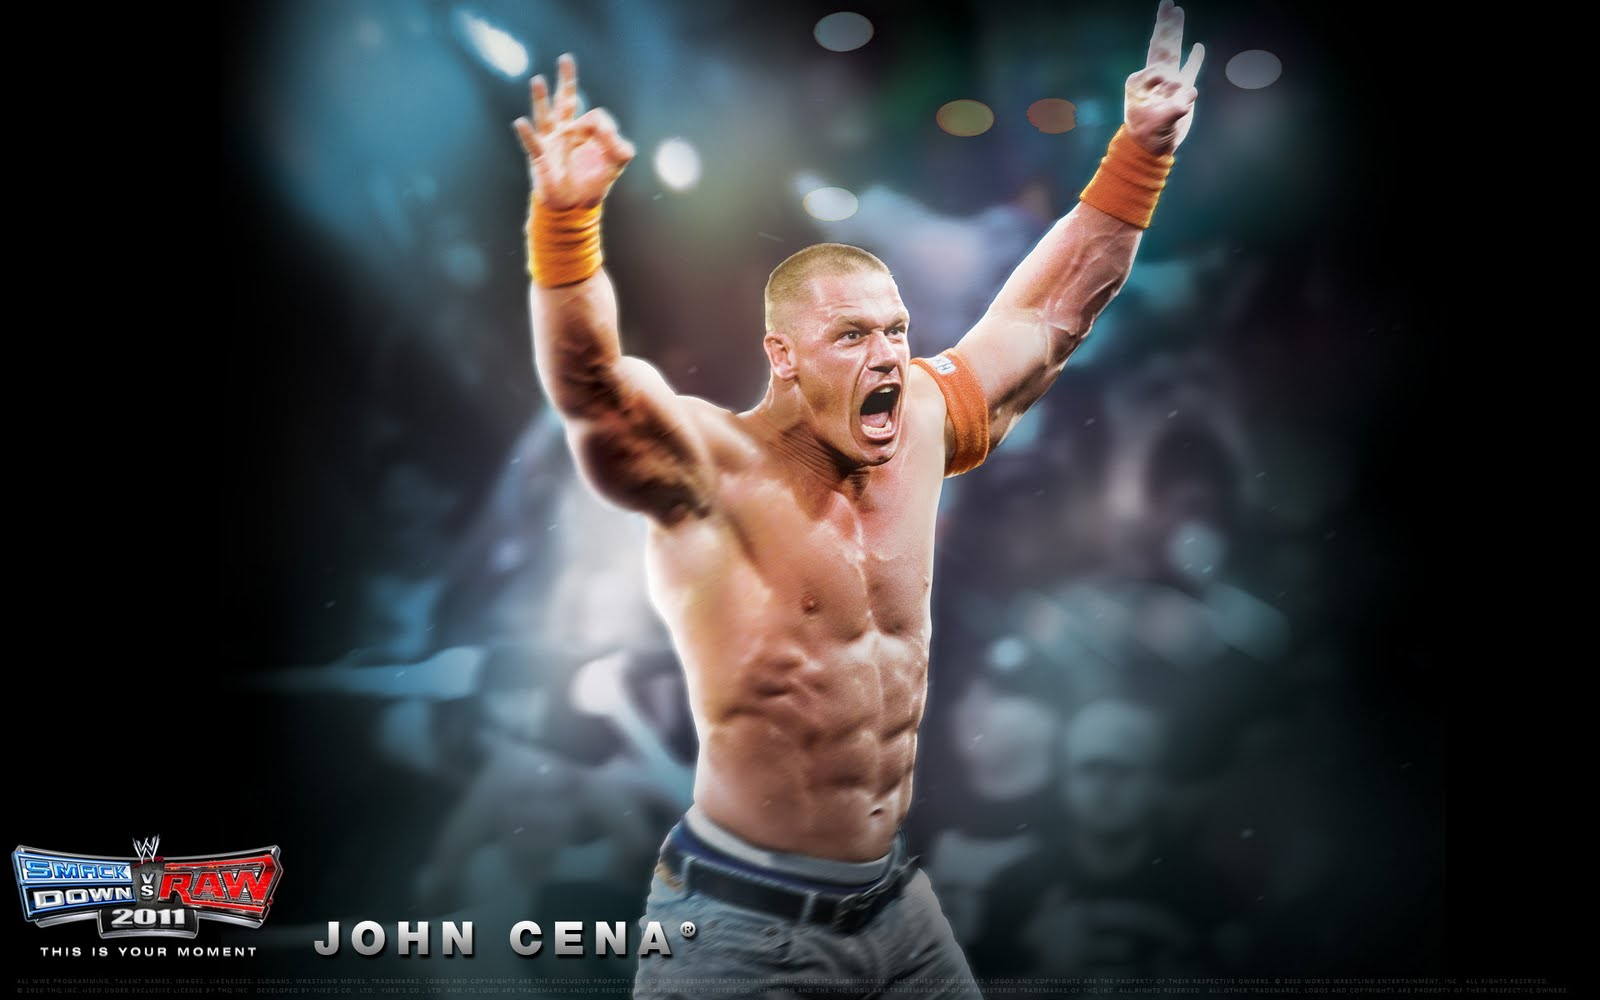 jhon cena new wallpapers 2011